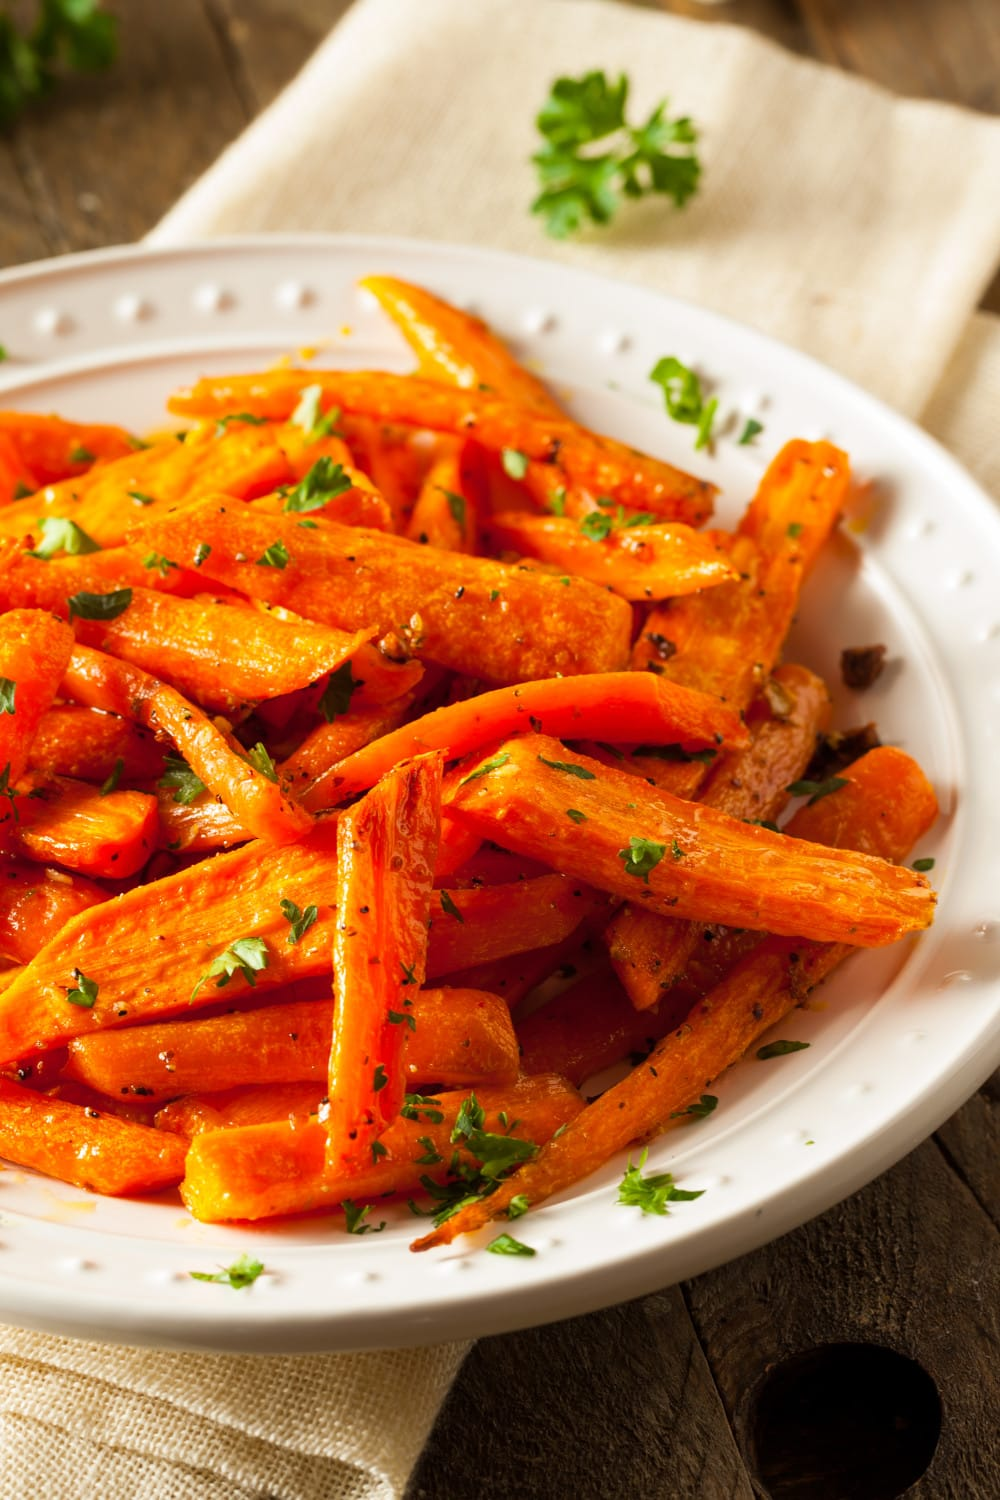 Roasted carrots on a white dish